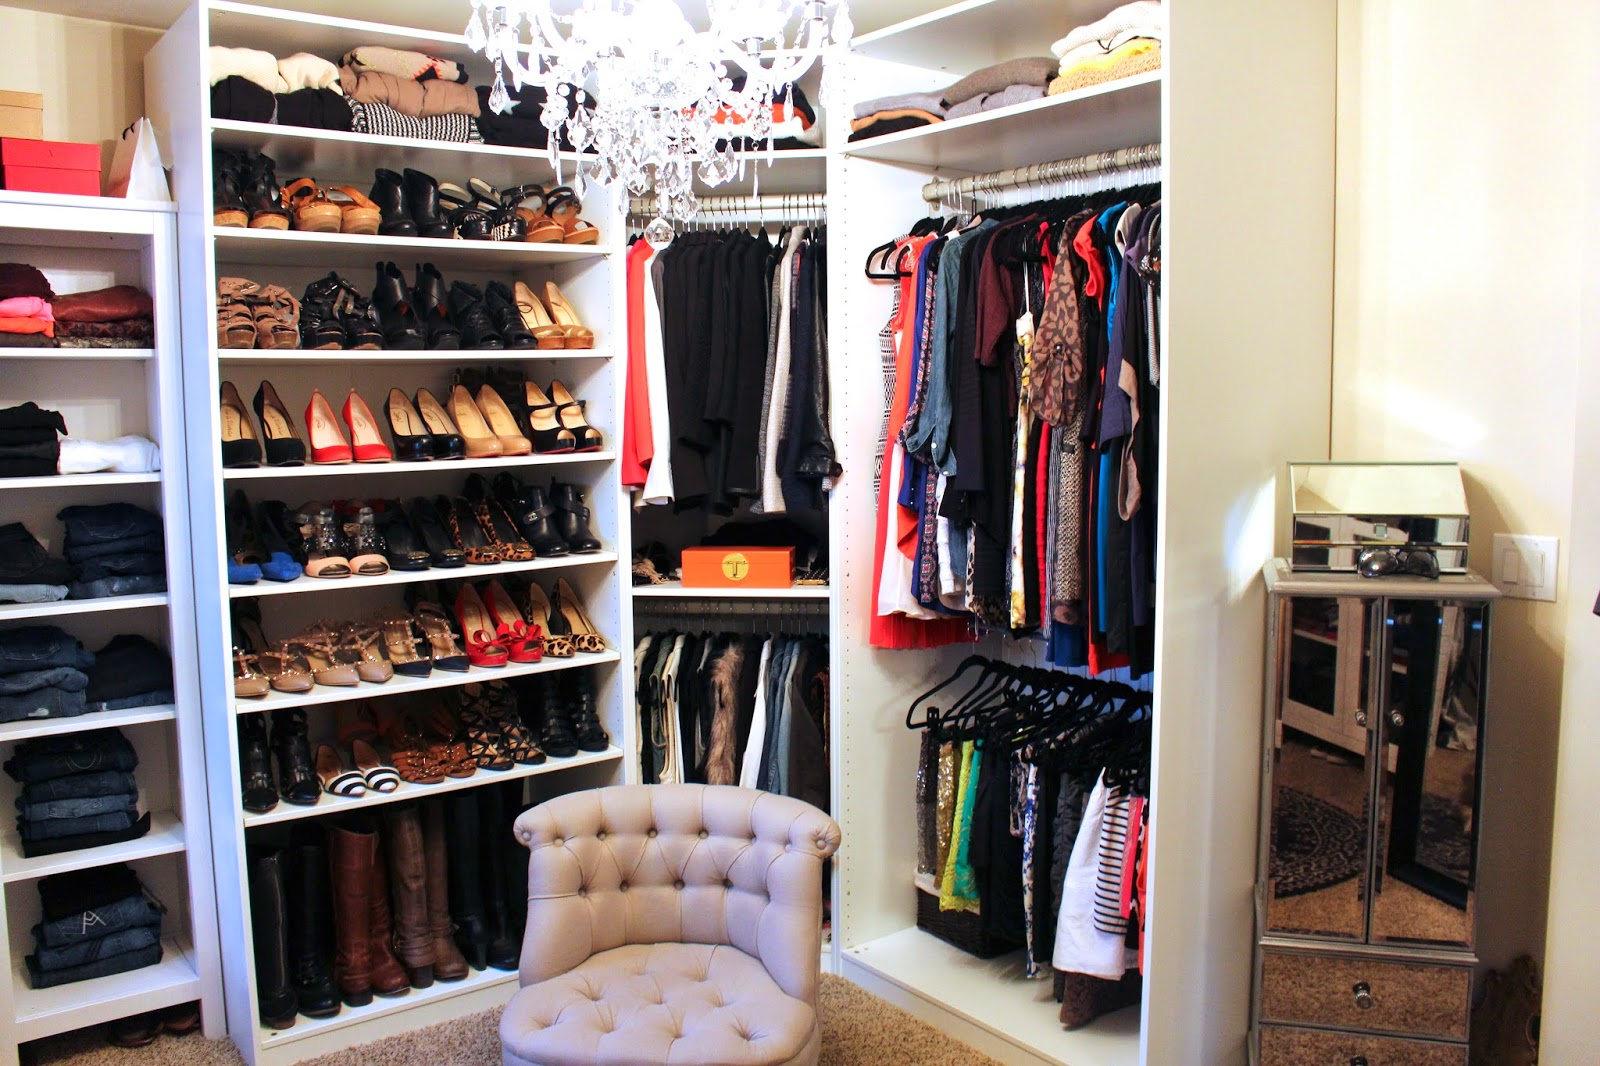 molding ideas around attic wall - TiffanyD Updated Closet and Makeup ing Area Tour